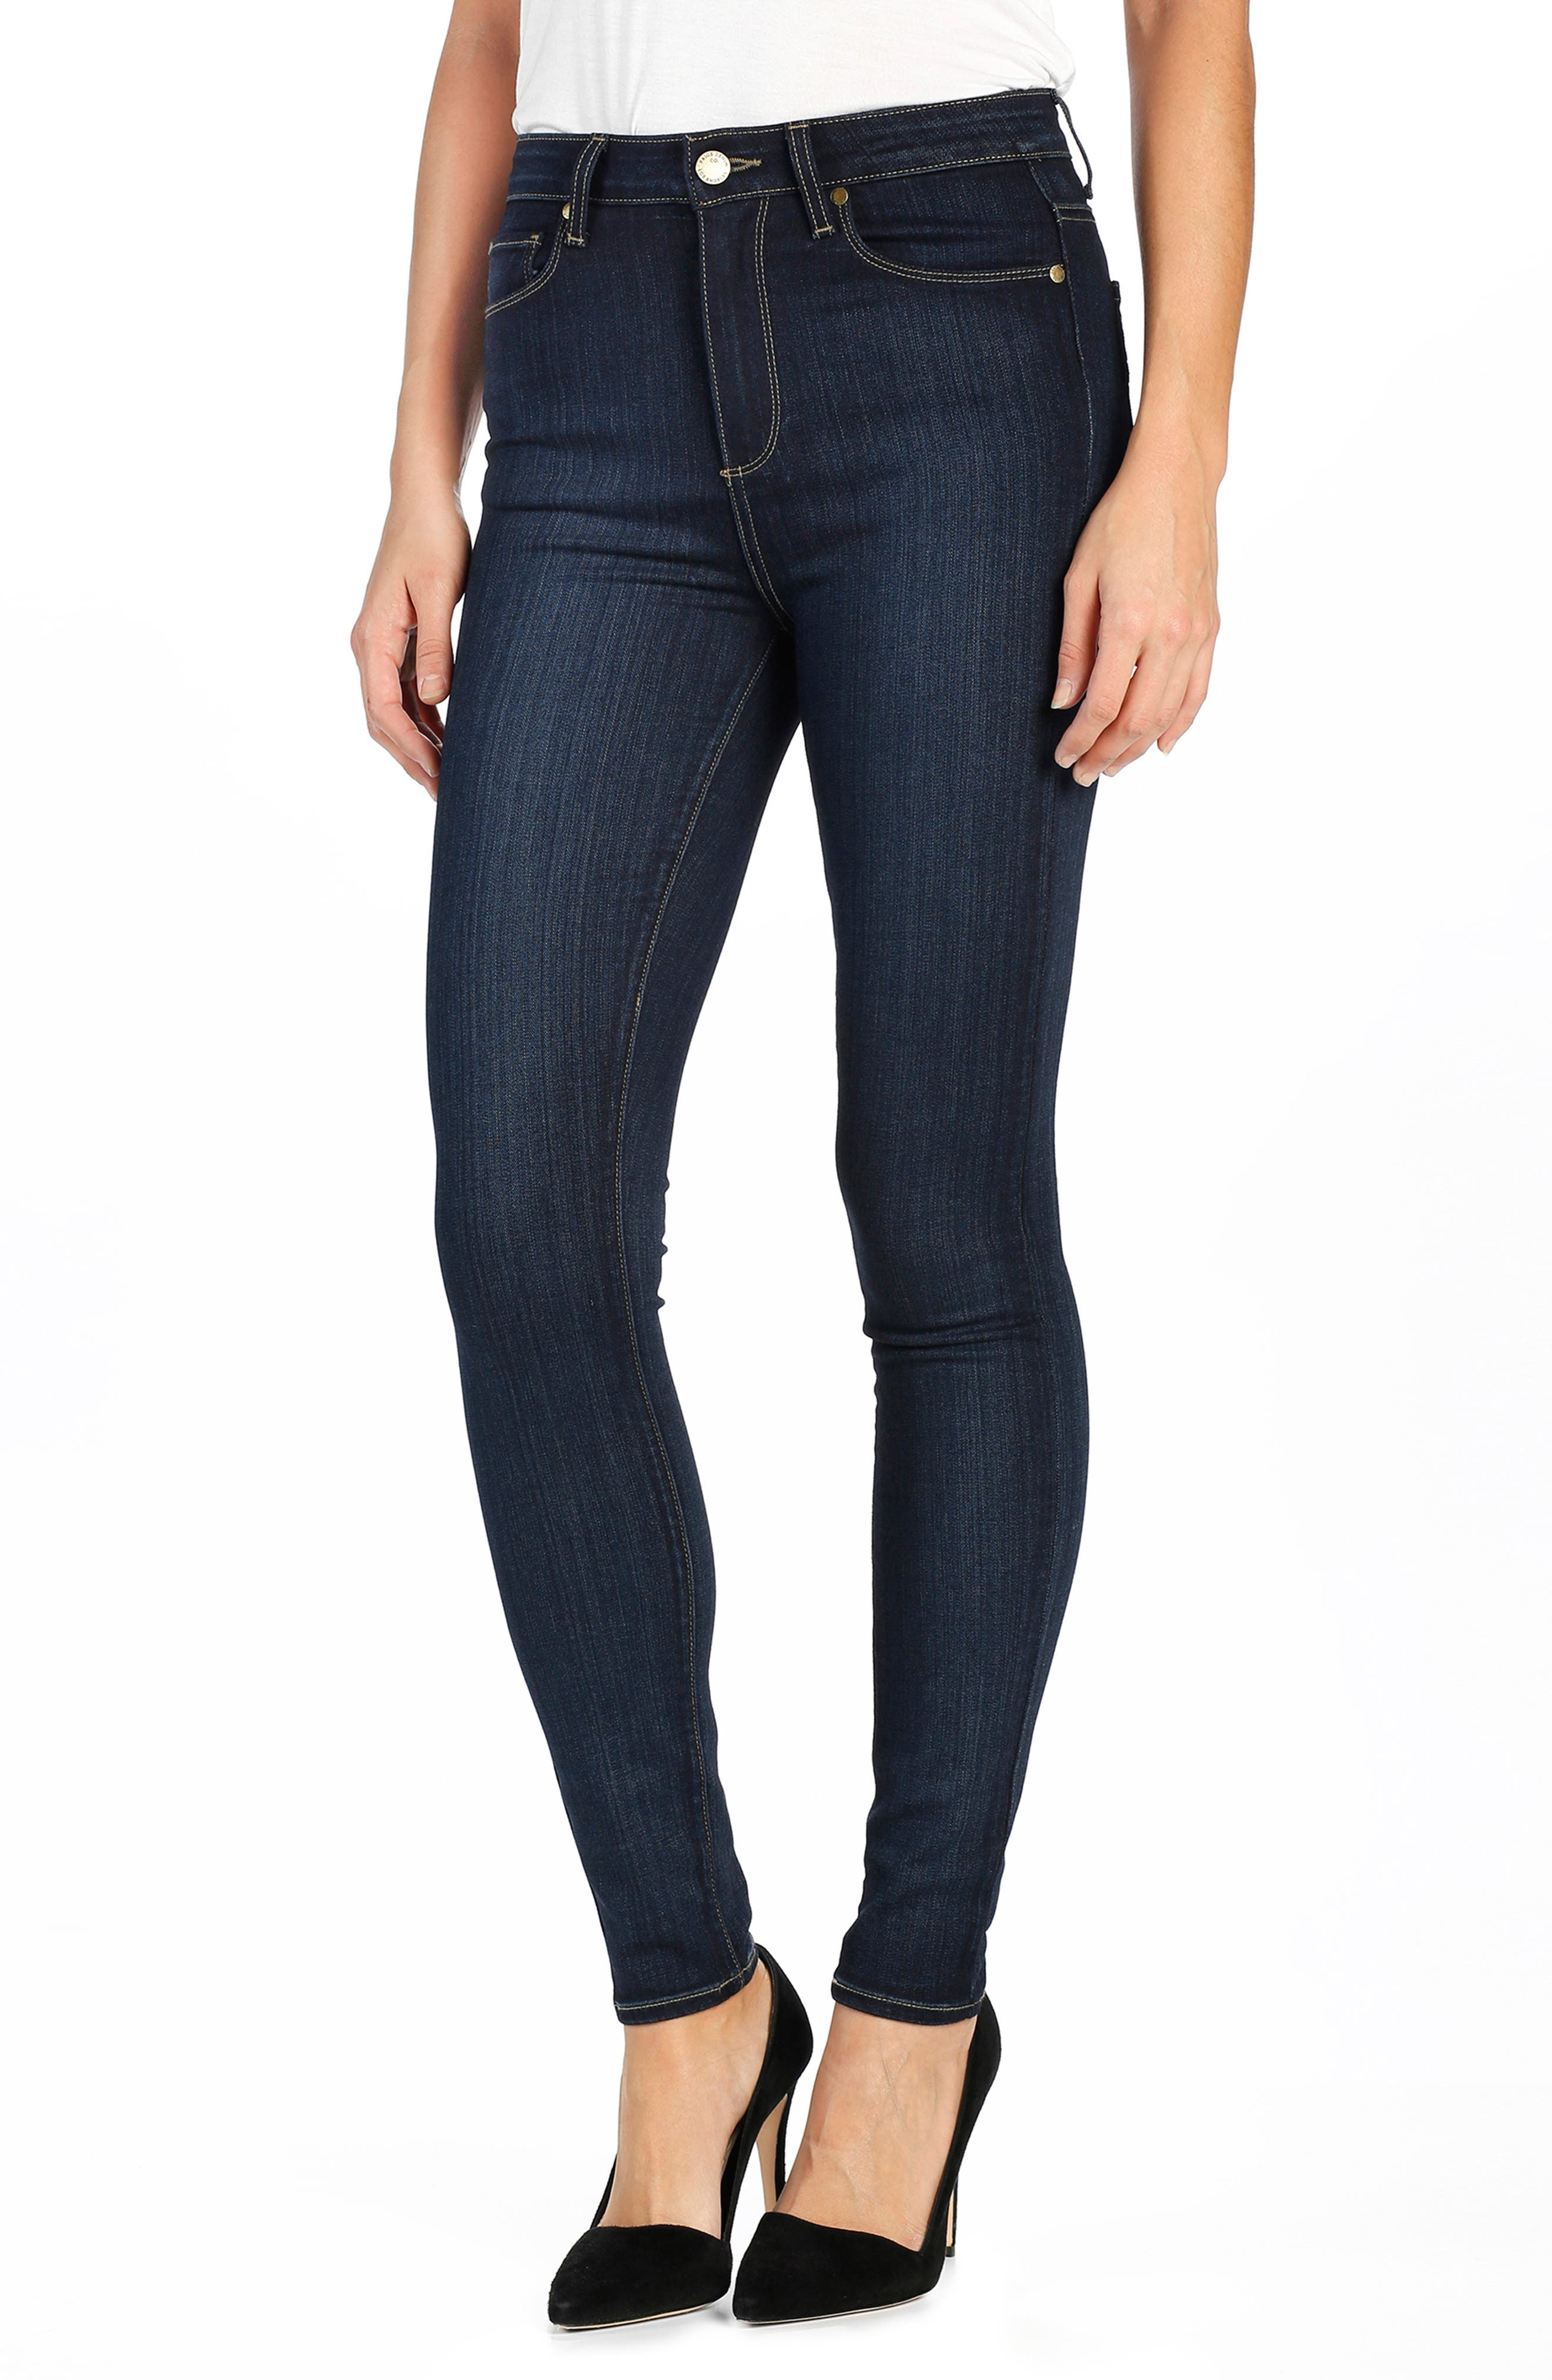 PAIGE,                             Transcend - Margot High Waist Ultra Skinny Jeans,                             Main thumbnail 1, color,                             LA RUE NO WHISKERS